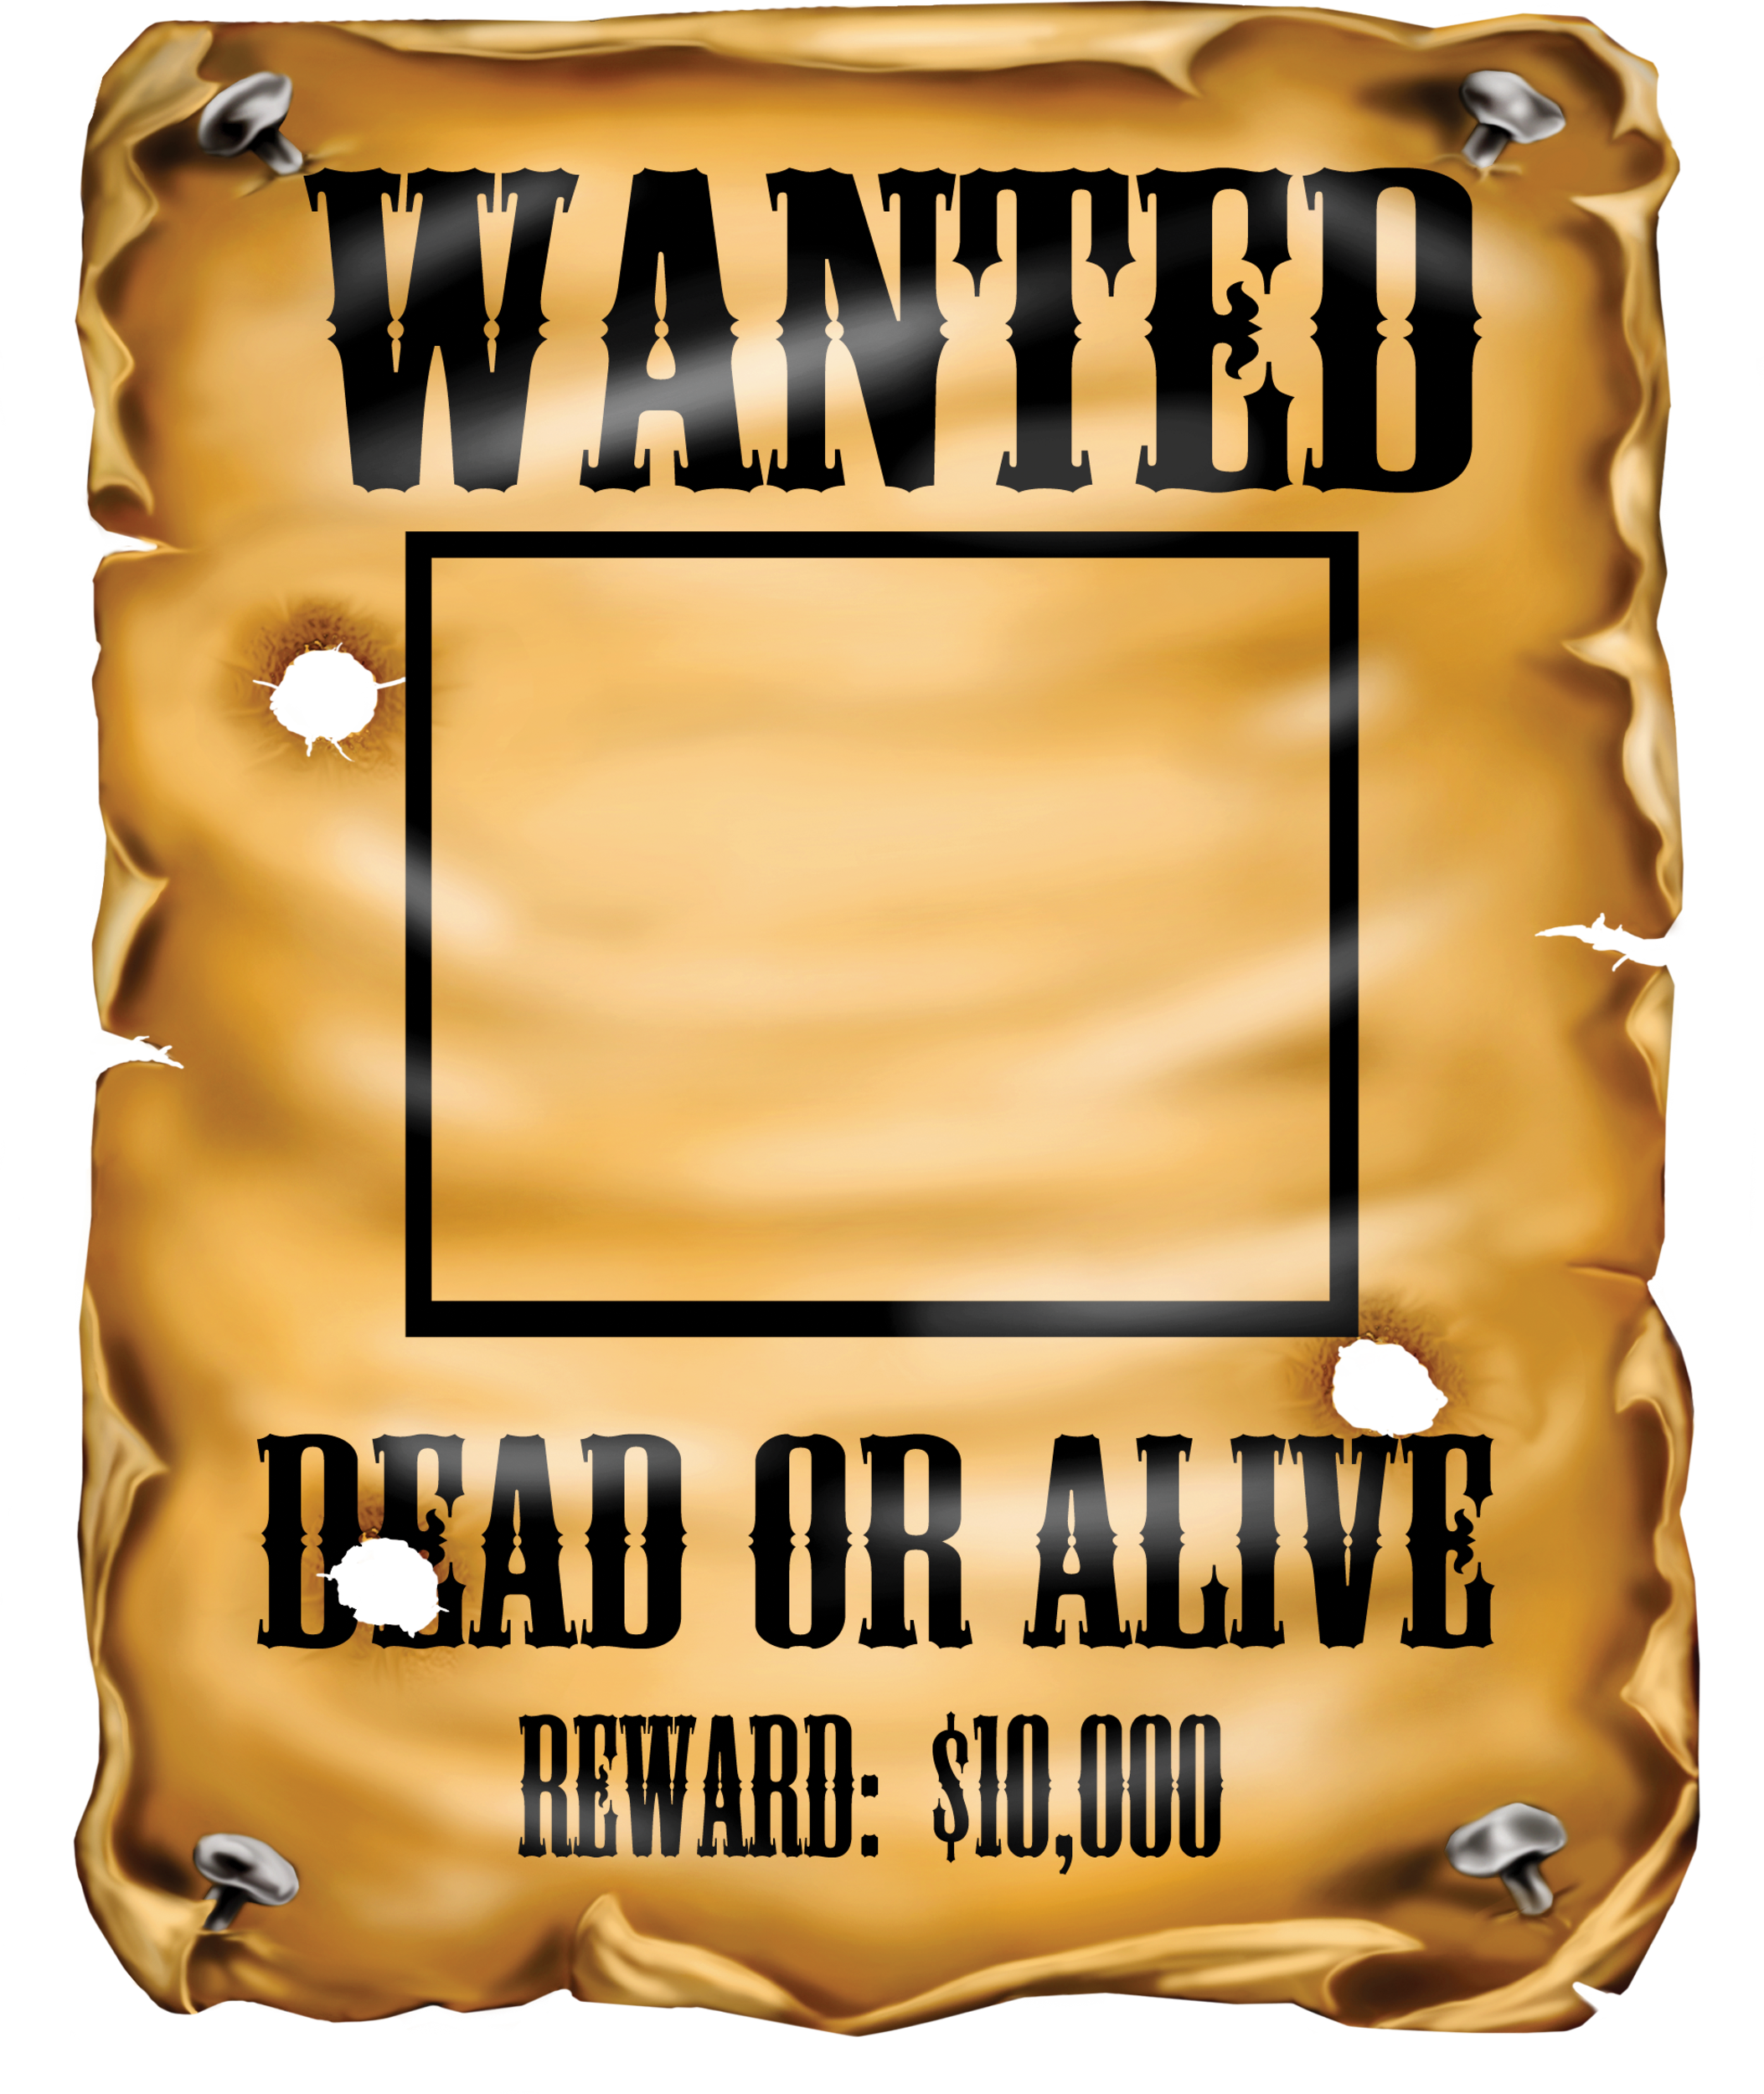 Shirt Clip Art Home Cowboy Wanted Poster-Shirt Clip Art Home Cowboy Wanted Poster Wanted Poster-2